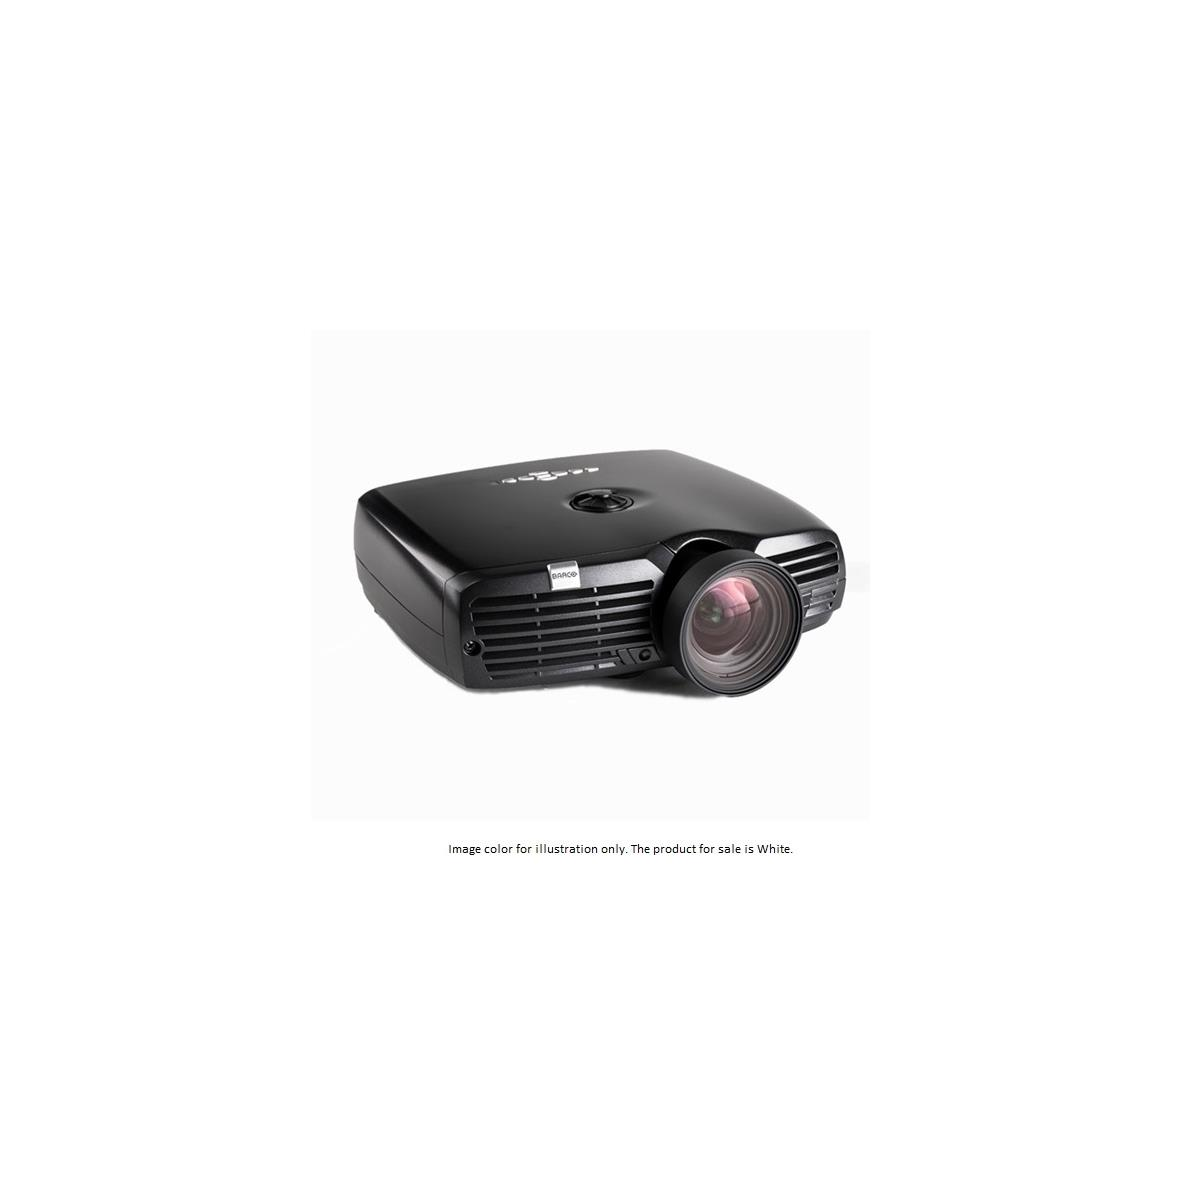 F22 1080p Single-Chip DLP Projector with High Brightness MkIII Color Wheel and Wide Angle EN17 Lens, 1920x1080, Up to 3300 Lumens, White